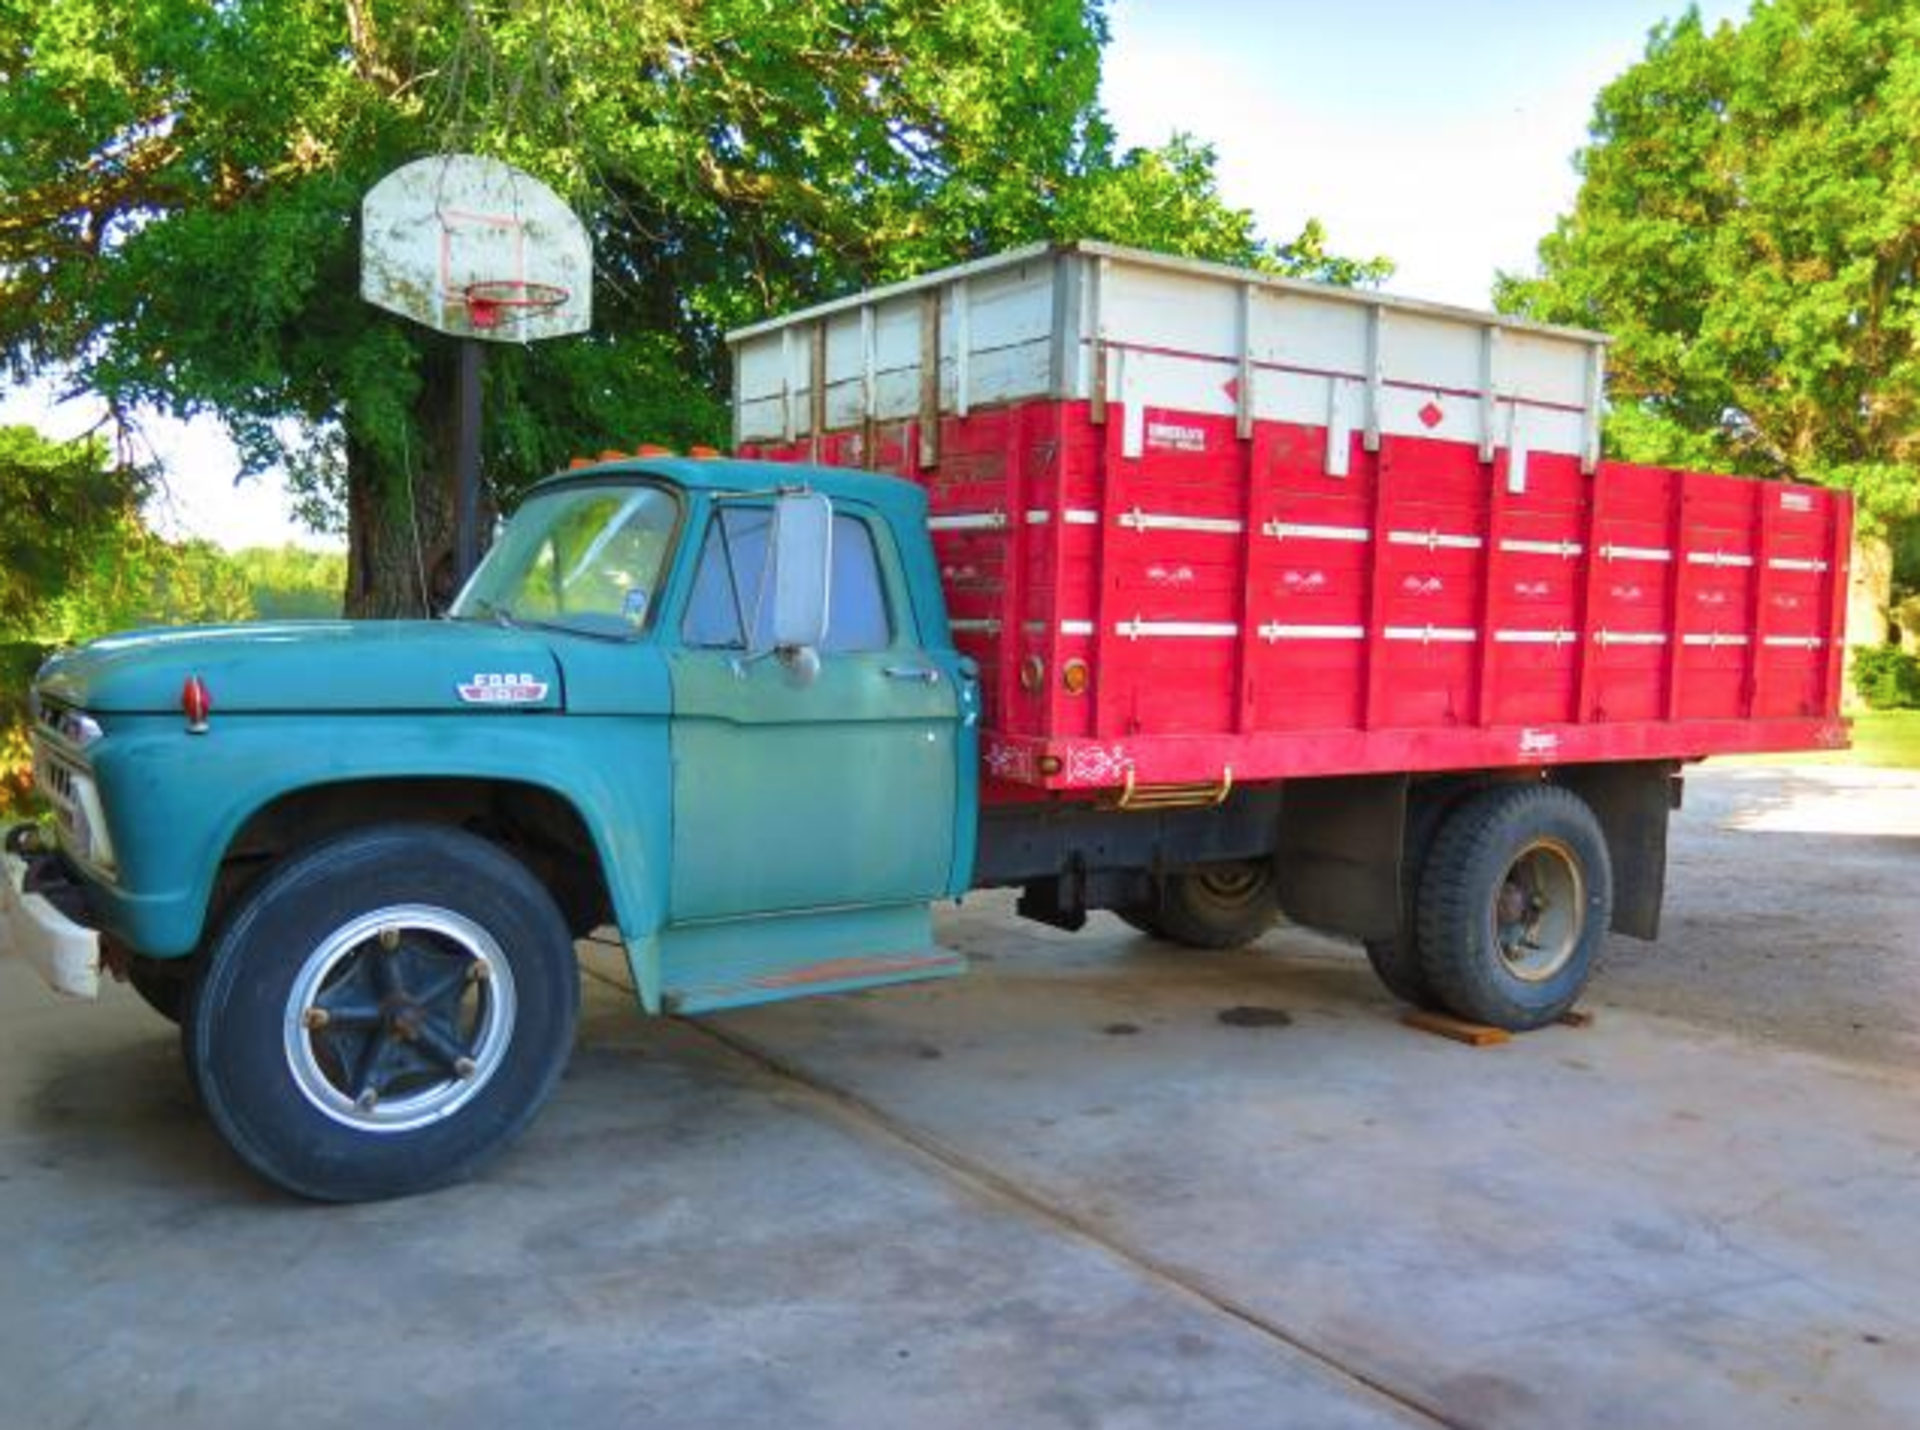 Lot 0 - Full Catalog Coming! Estate Vehicle, Restored & Original Oliver Tractor Collection & Parts